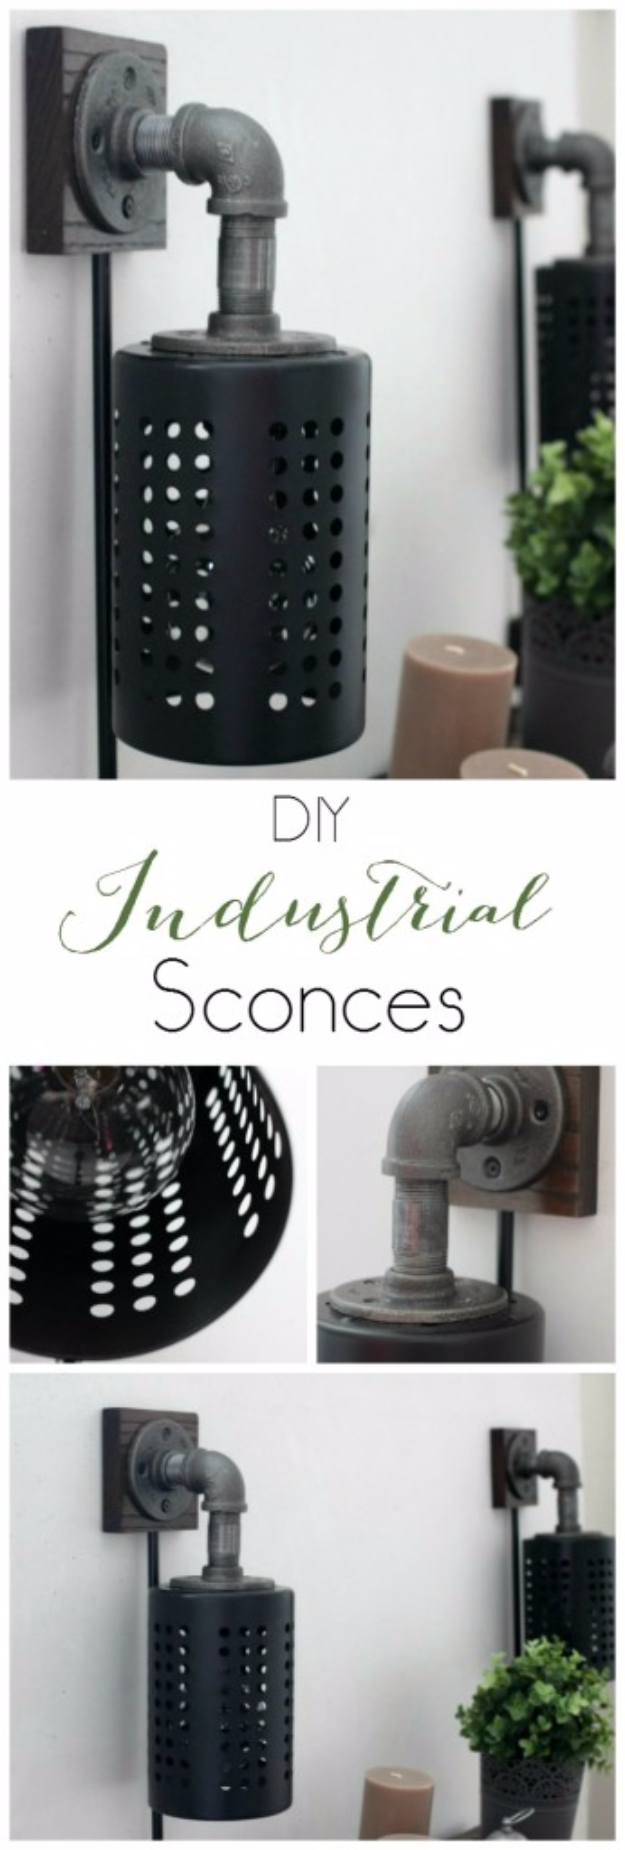 Best IKEA Hacks and DIY Hack Ideas for Furniture Projects and Home Decor from IKEA - DIY Industrial Sconces - Creative IKEA Hack Tutorials for DIY Platform Bed, Desk, Vanity, Dresser, Coffee Table, Storage and Kitchen, Bedroom and Bathroom Decor #ikeahacks #diy